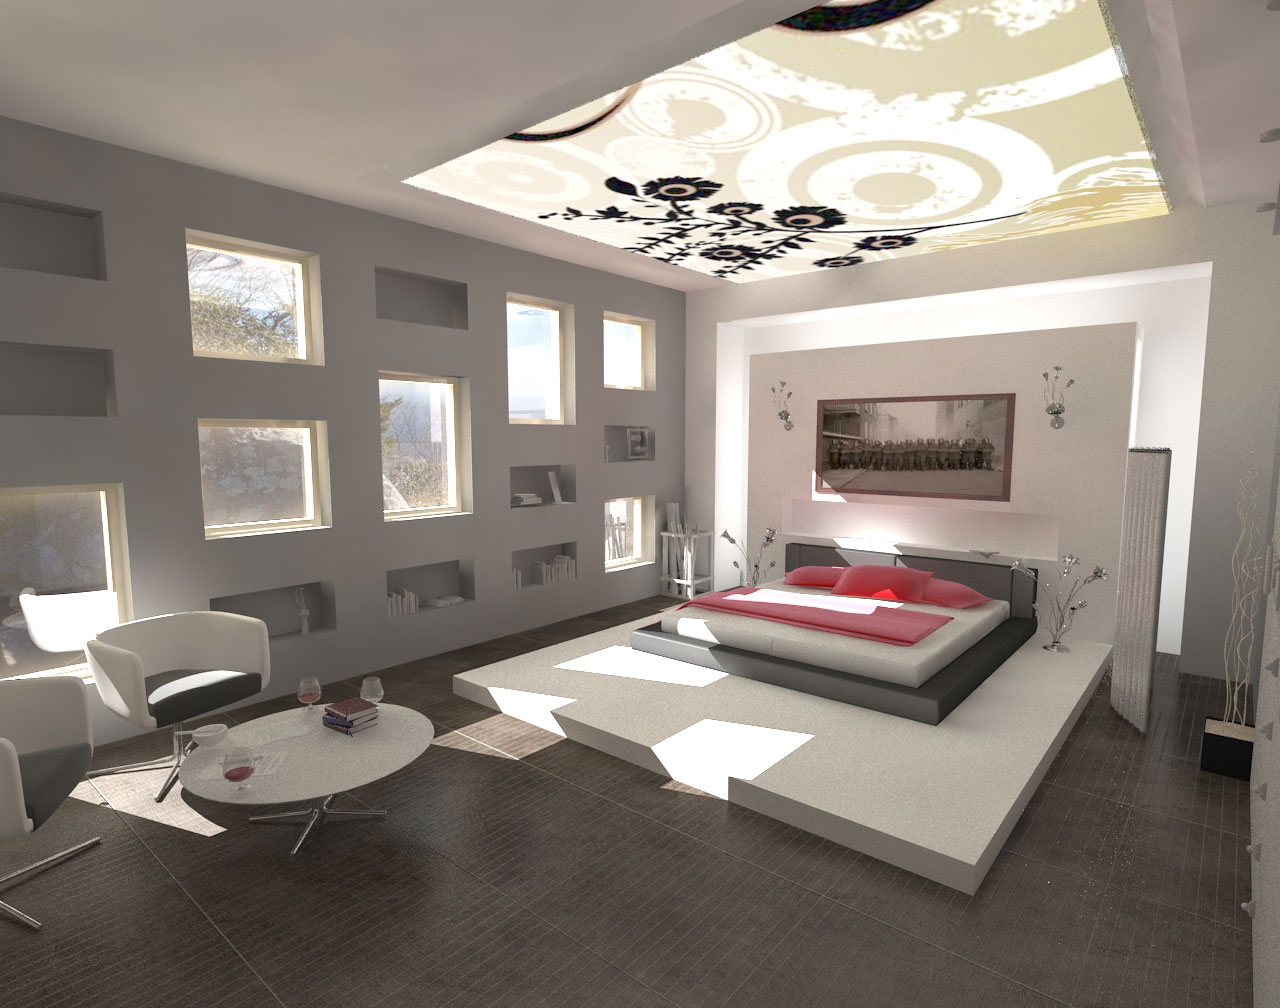 Exclusive interior bedroom ideas home design ideas and for Home design alternatives